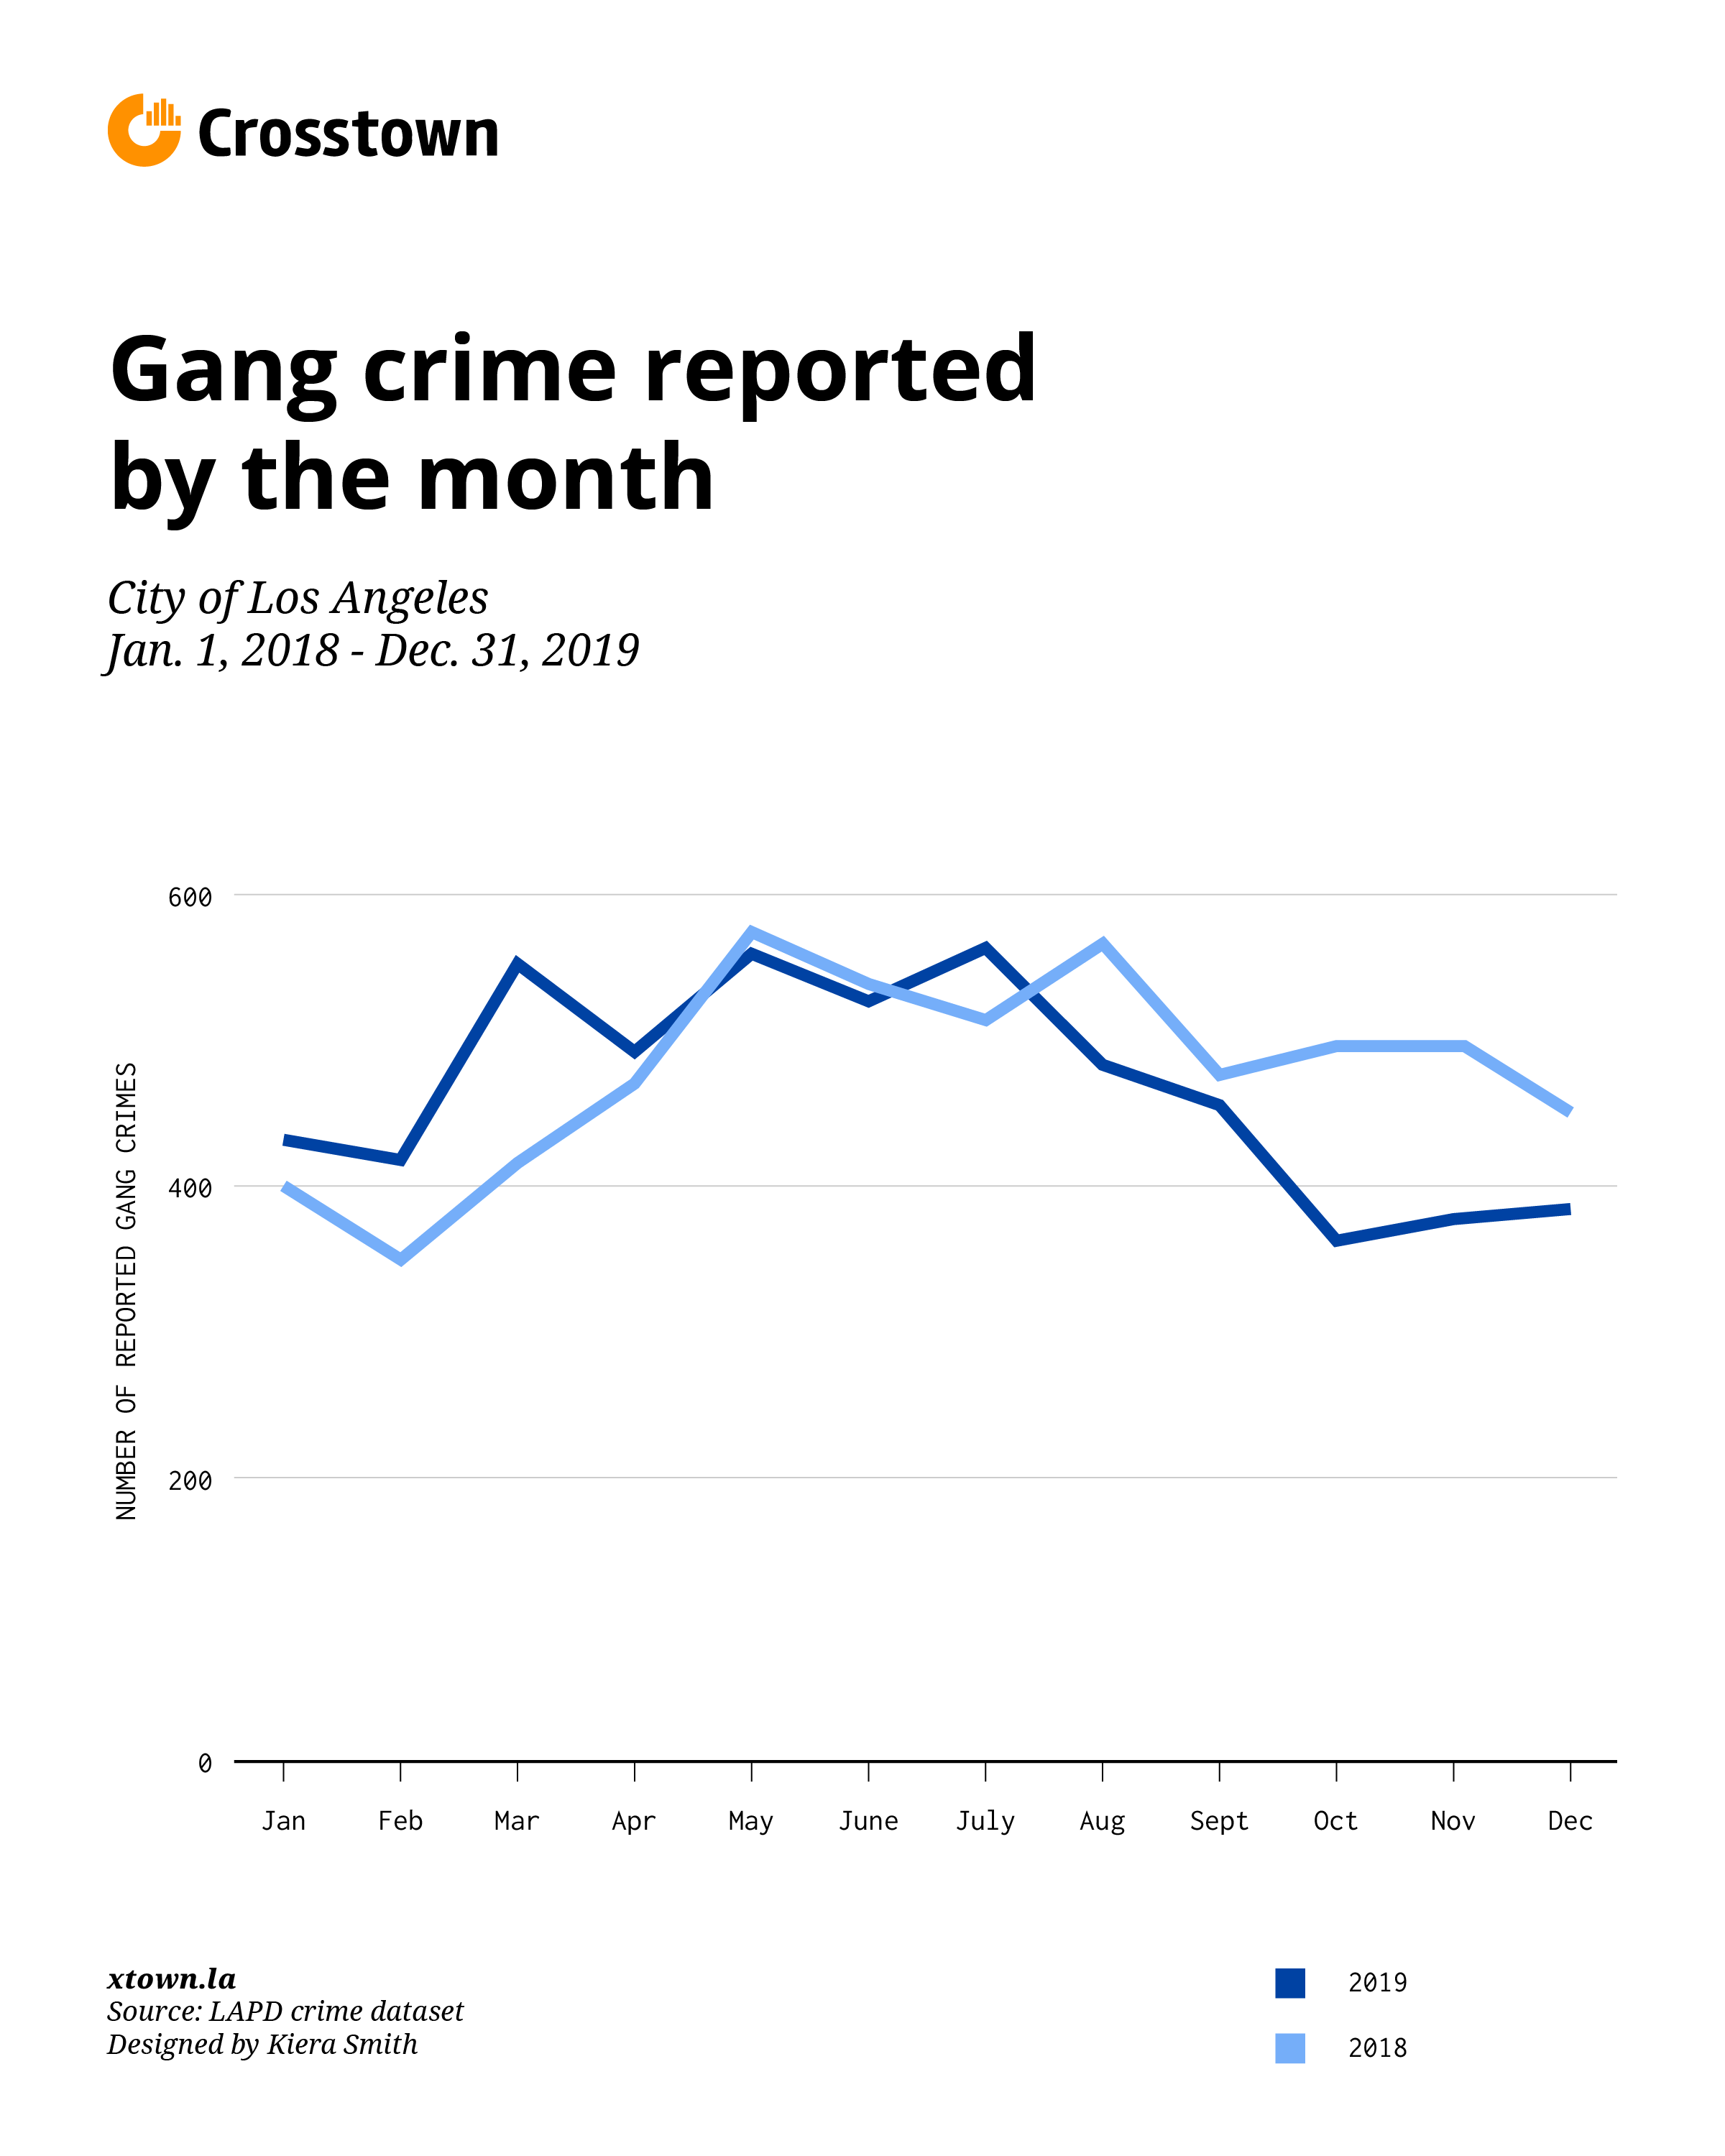 Gang crime reported by month in Los Angeles